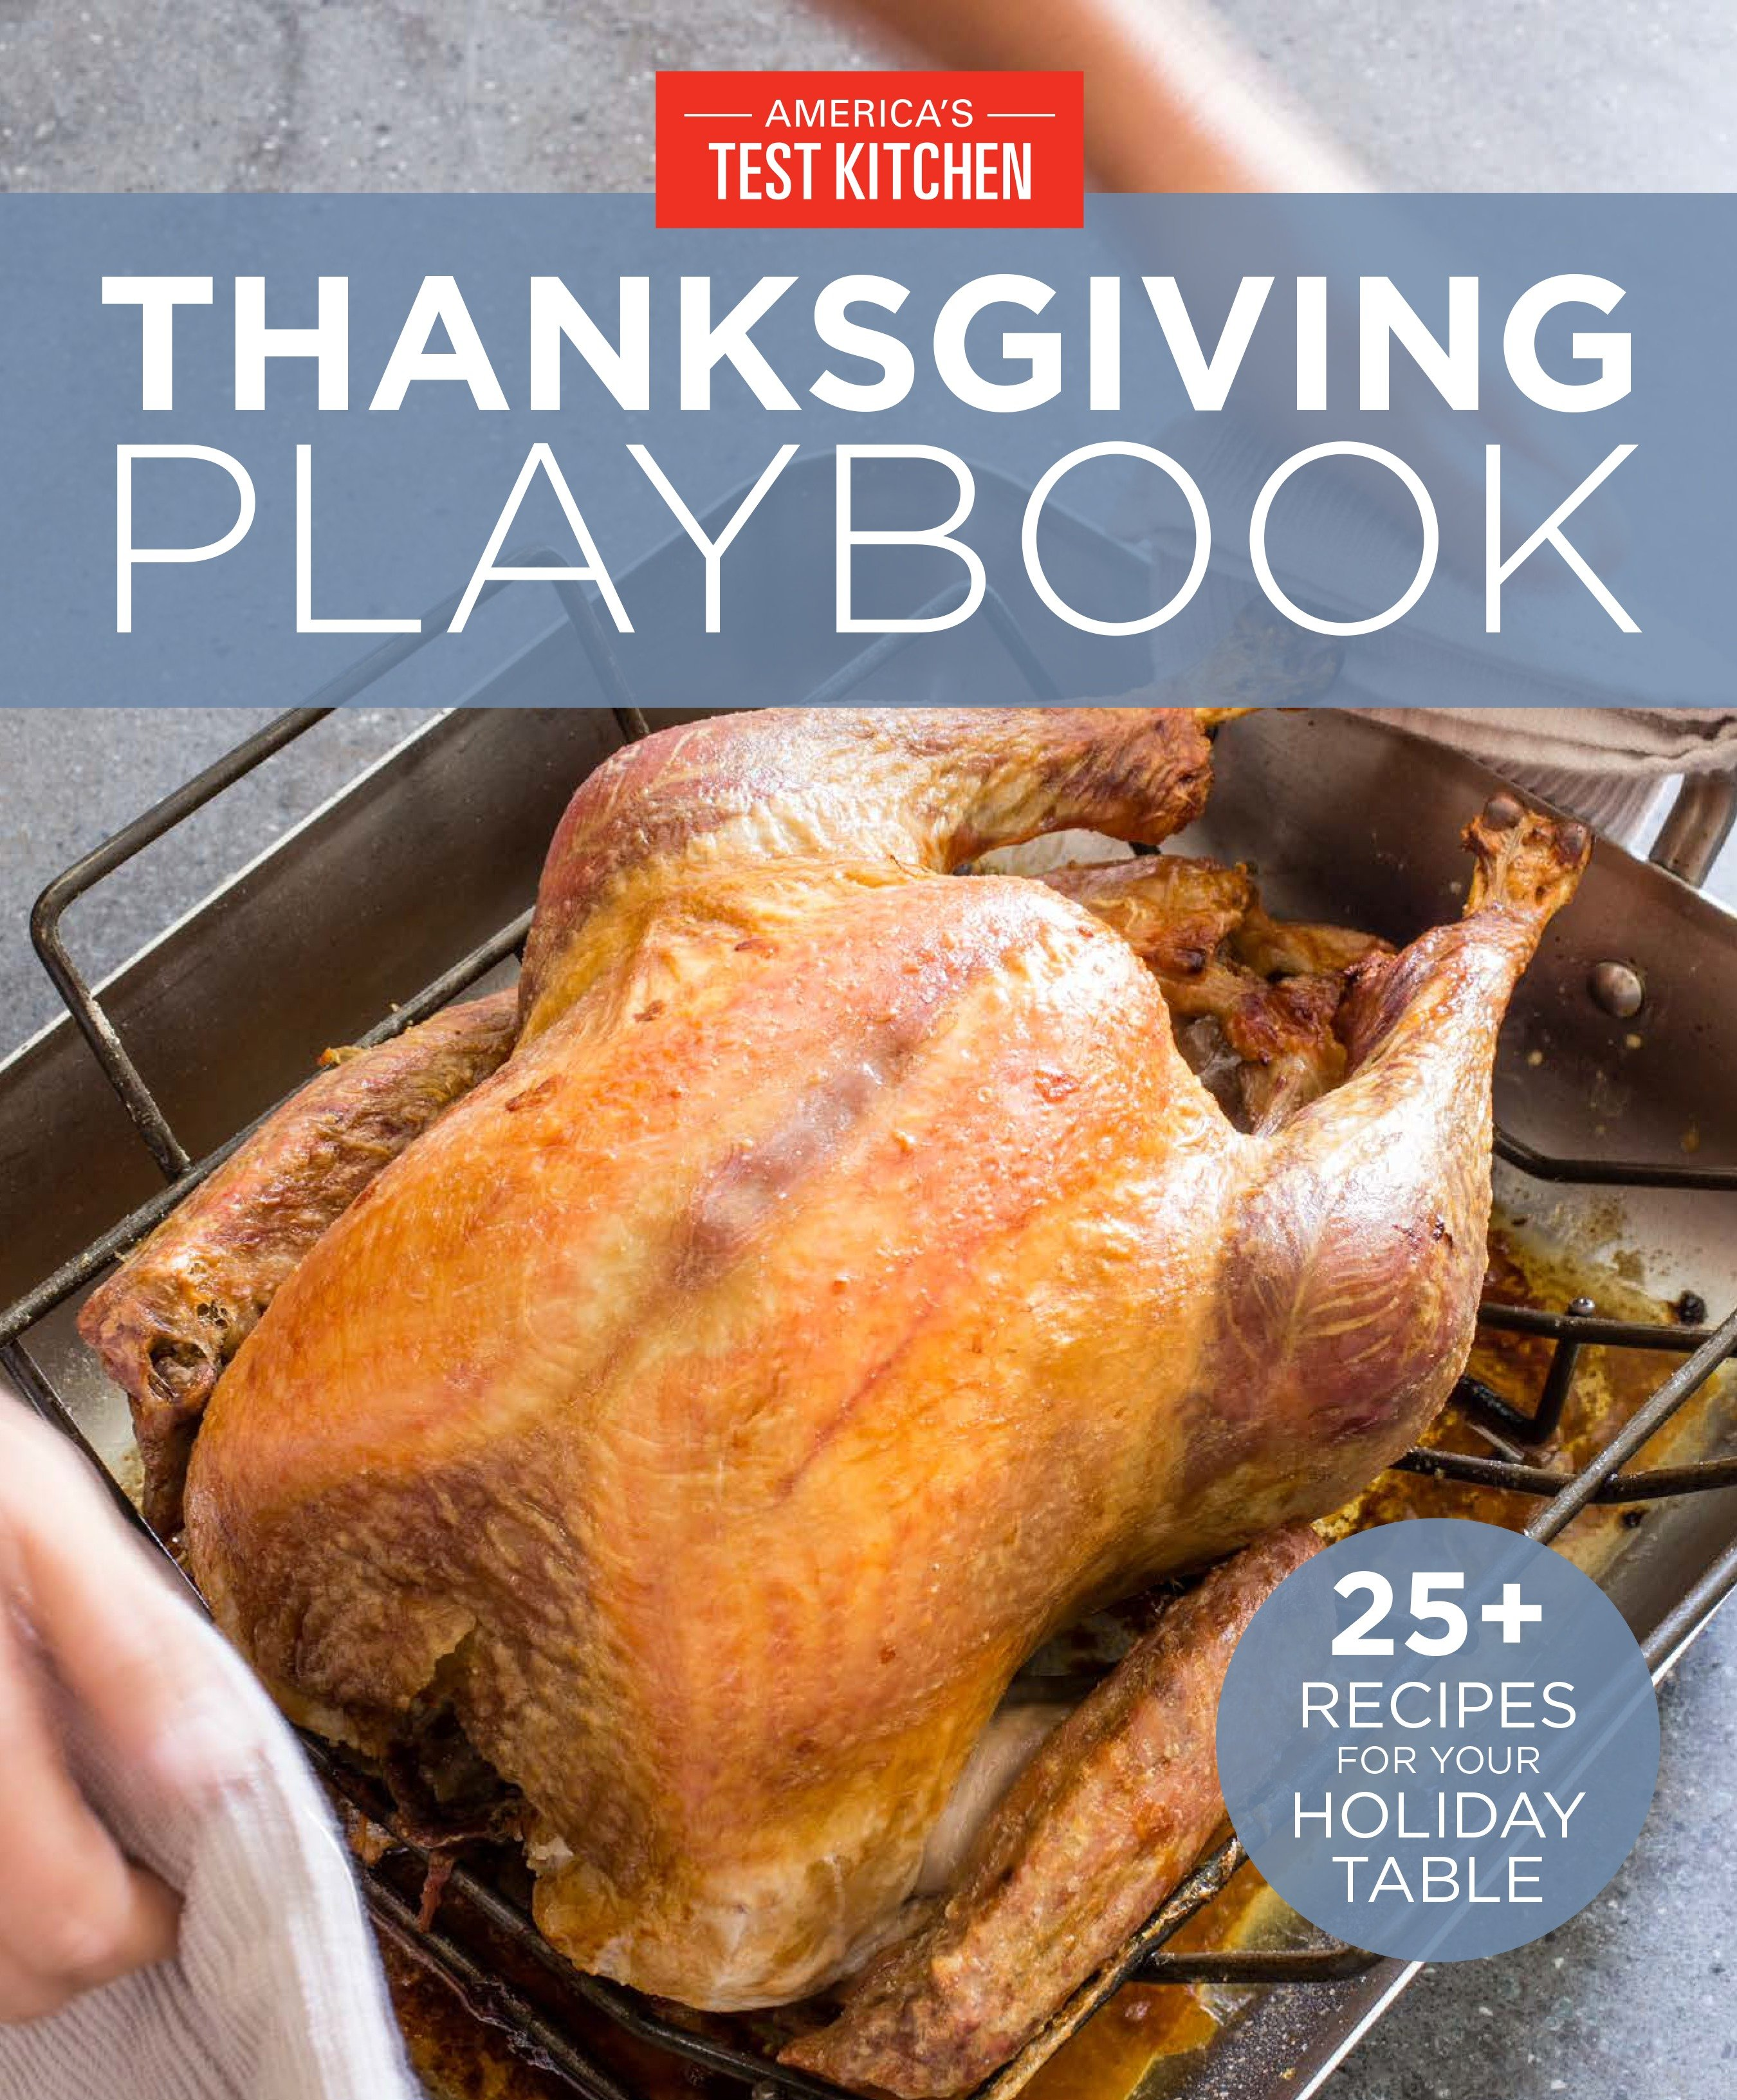 America's Test Kitchen Thanksgiving Playbook 25+ Recipes for Your Holiday Table